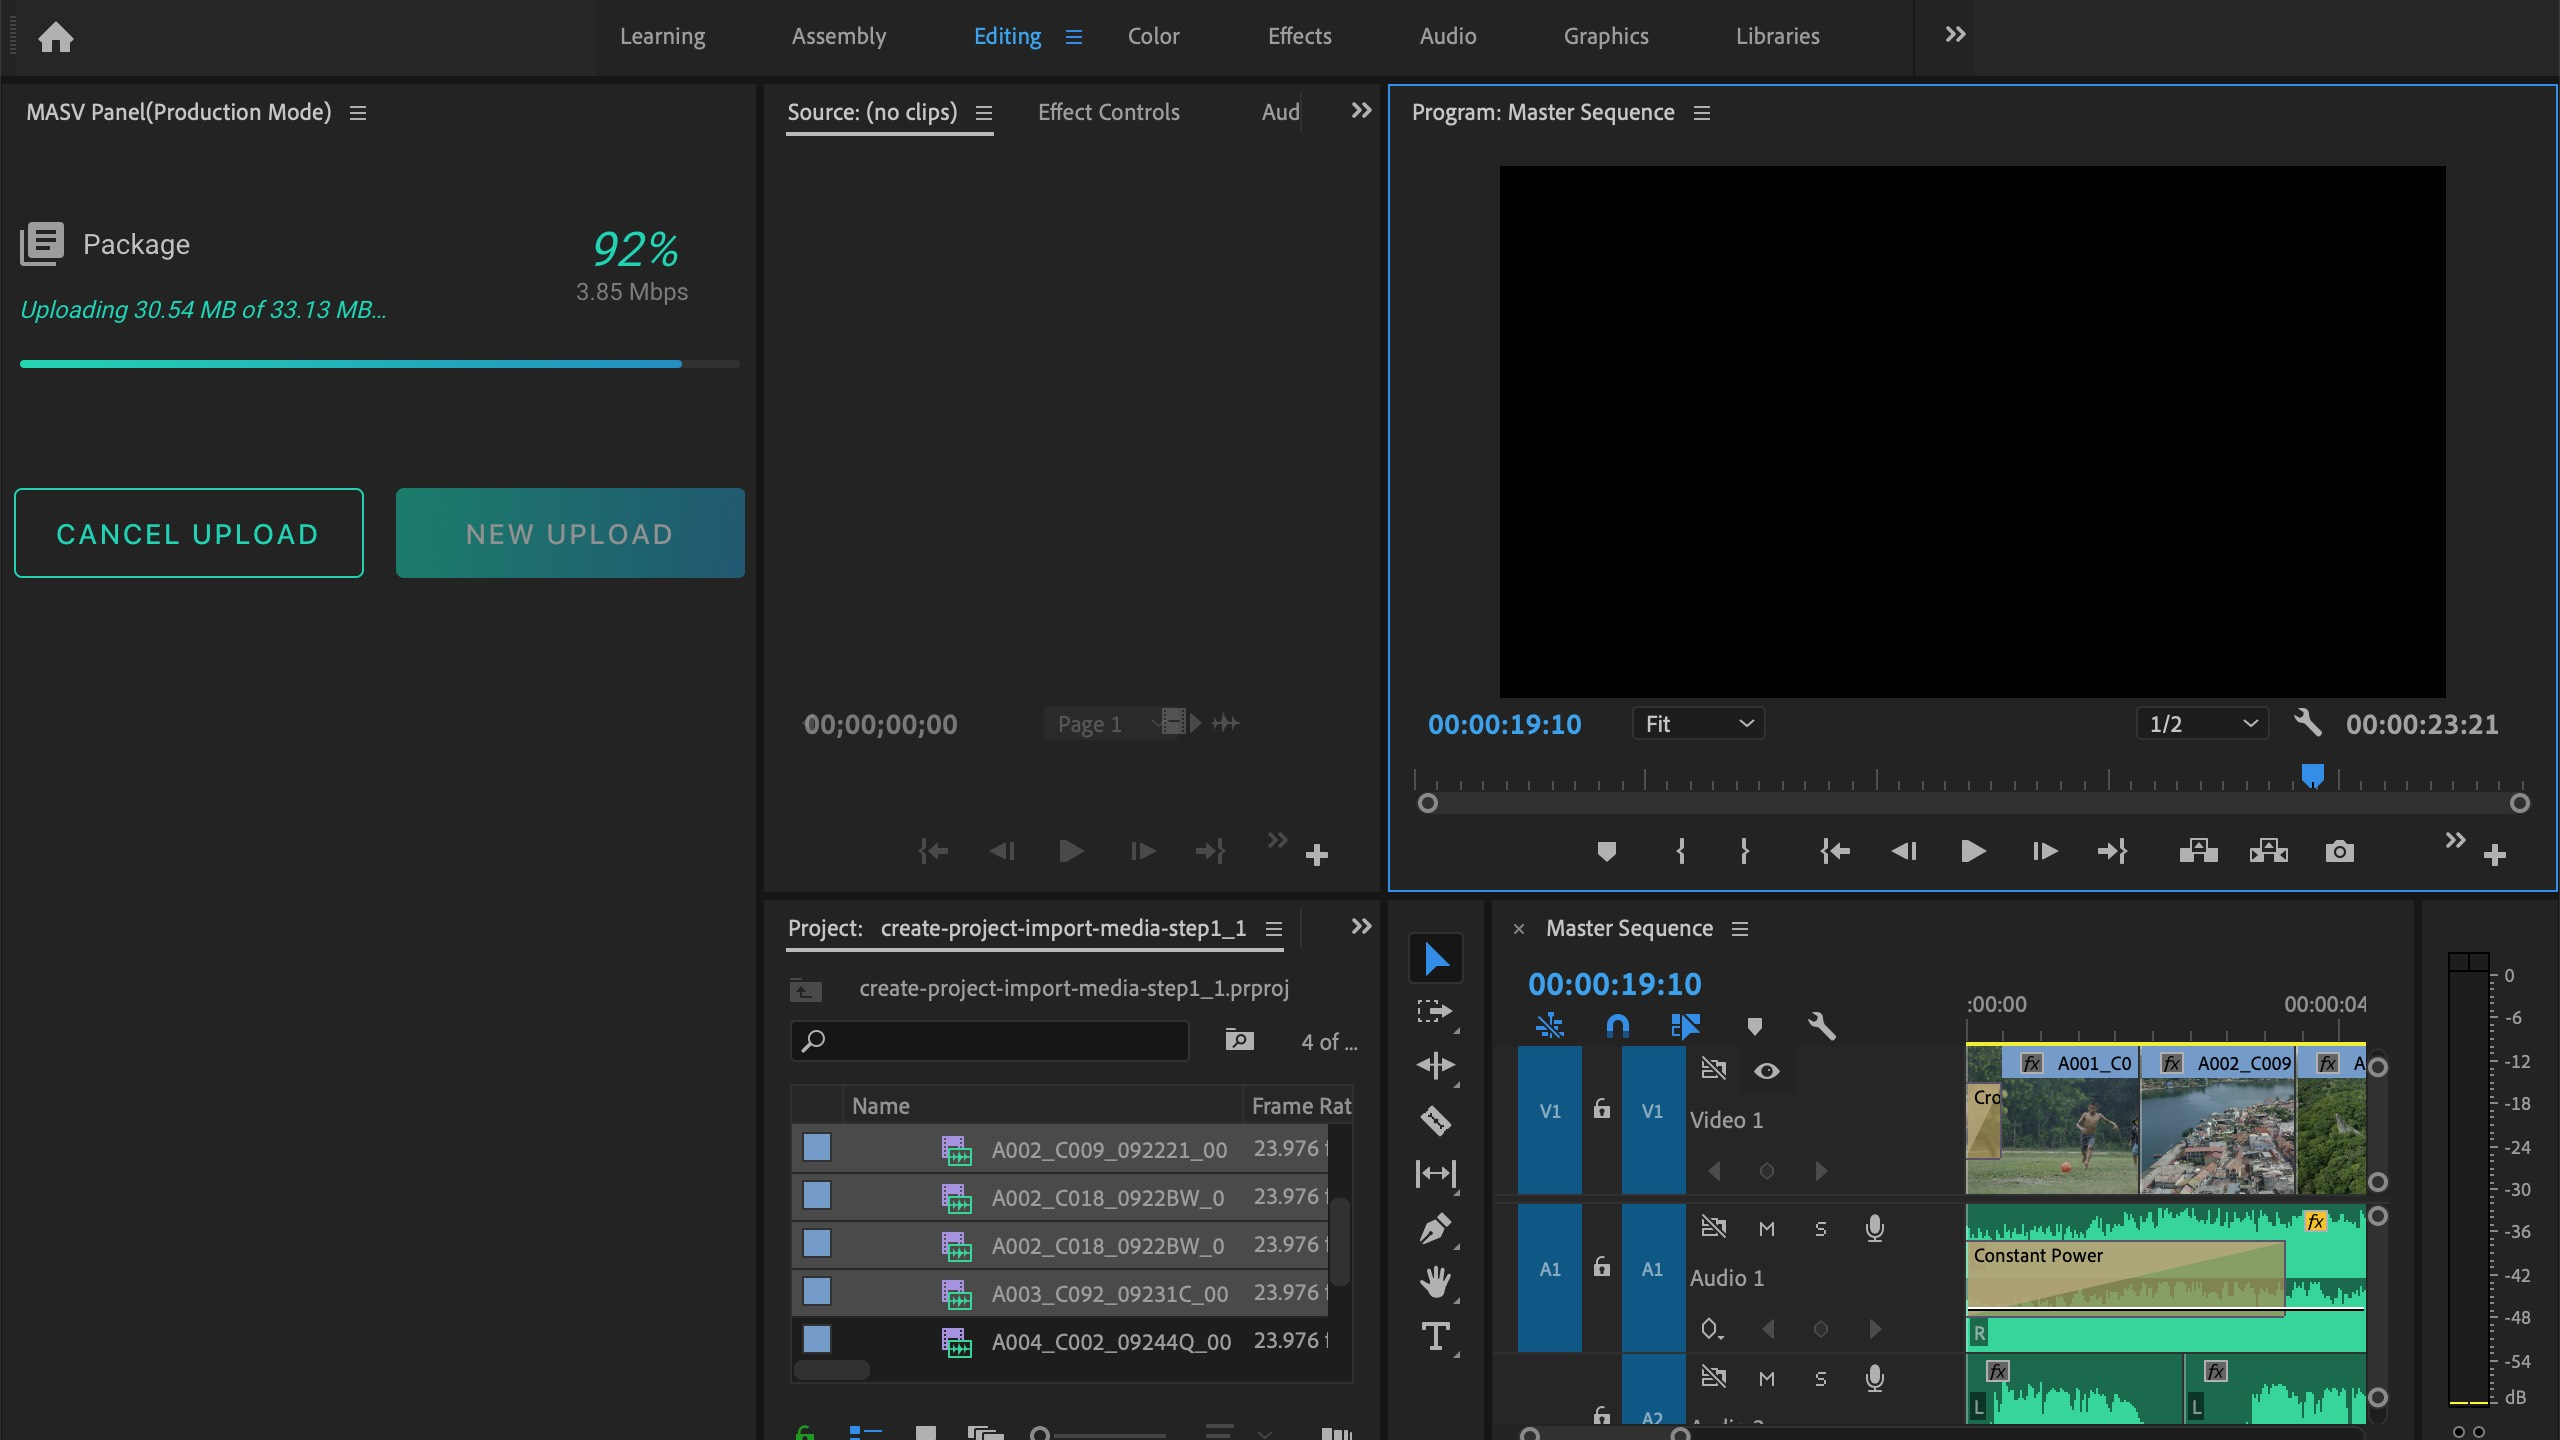 MASV provides rapid file transfers directly from Premiere Pro.